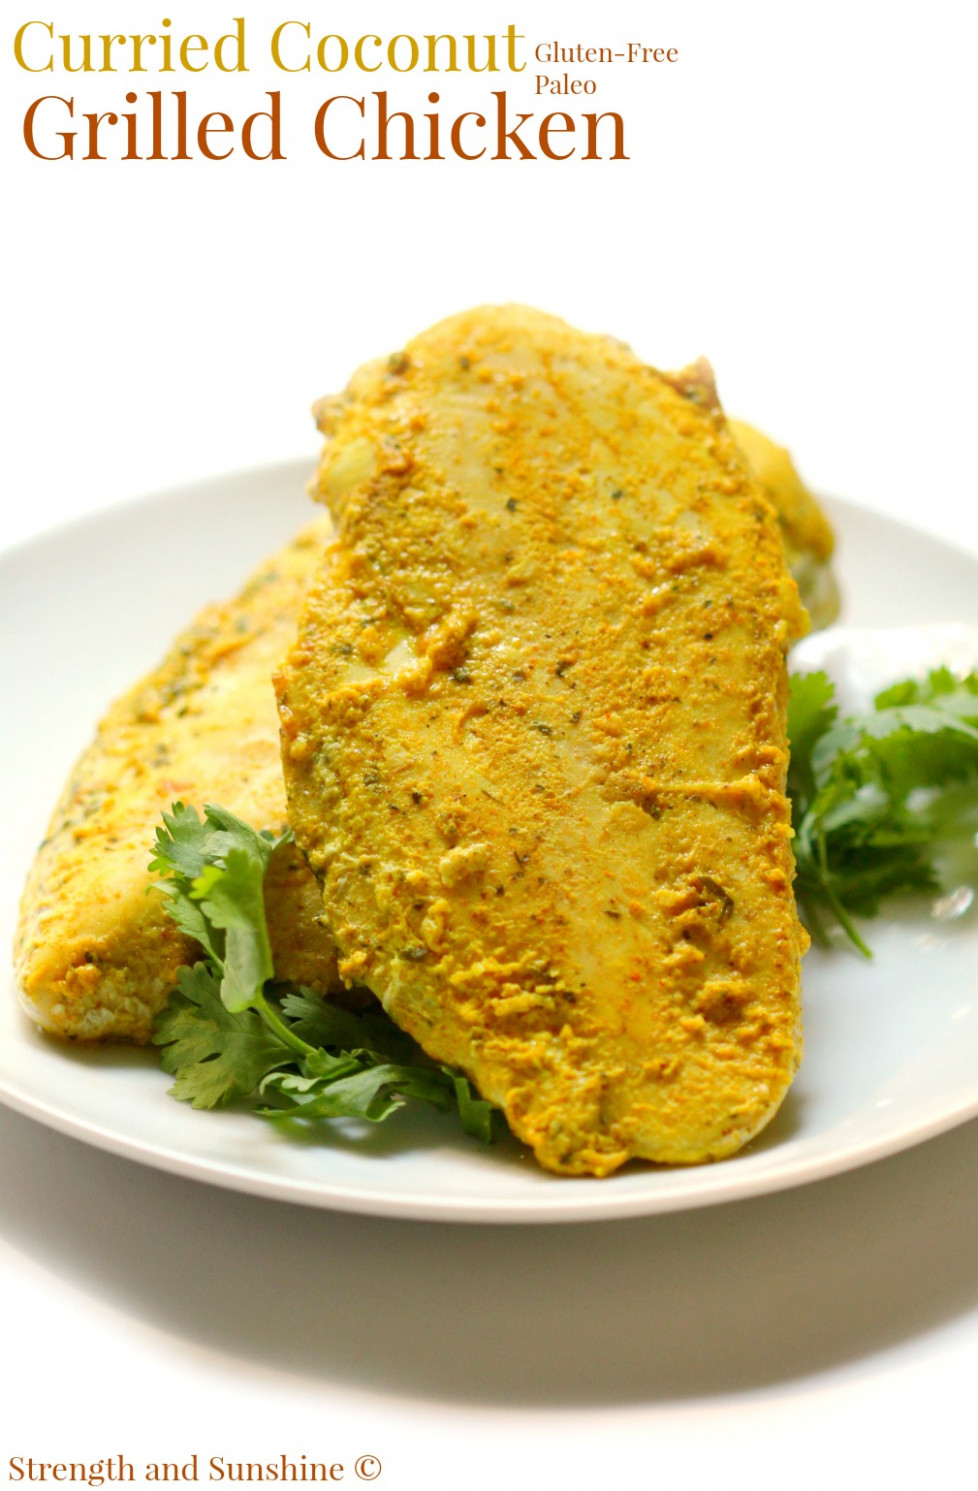 Curried Coconut Grilled Chicken - george foreman recipes chicken